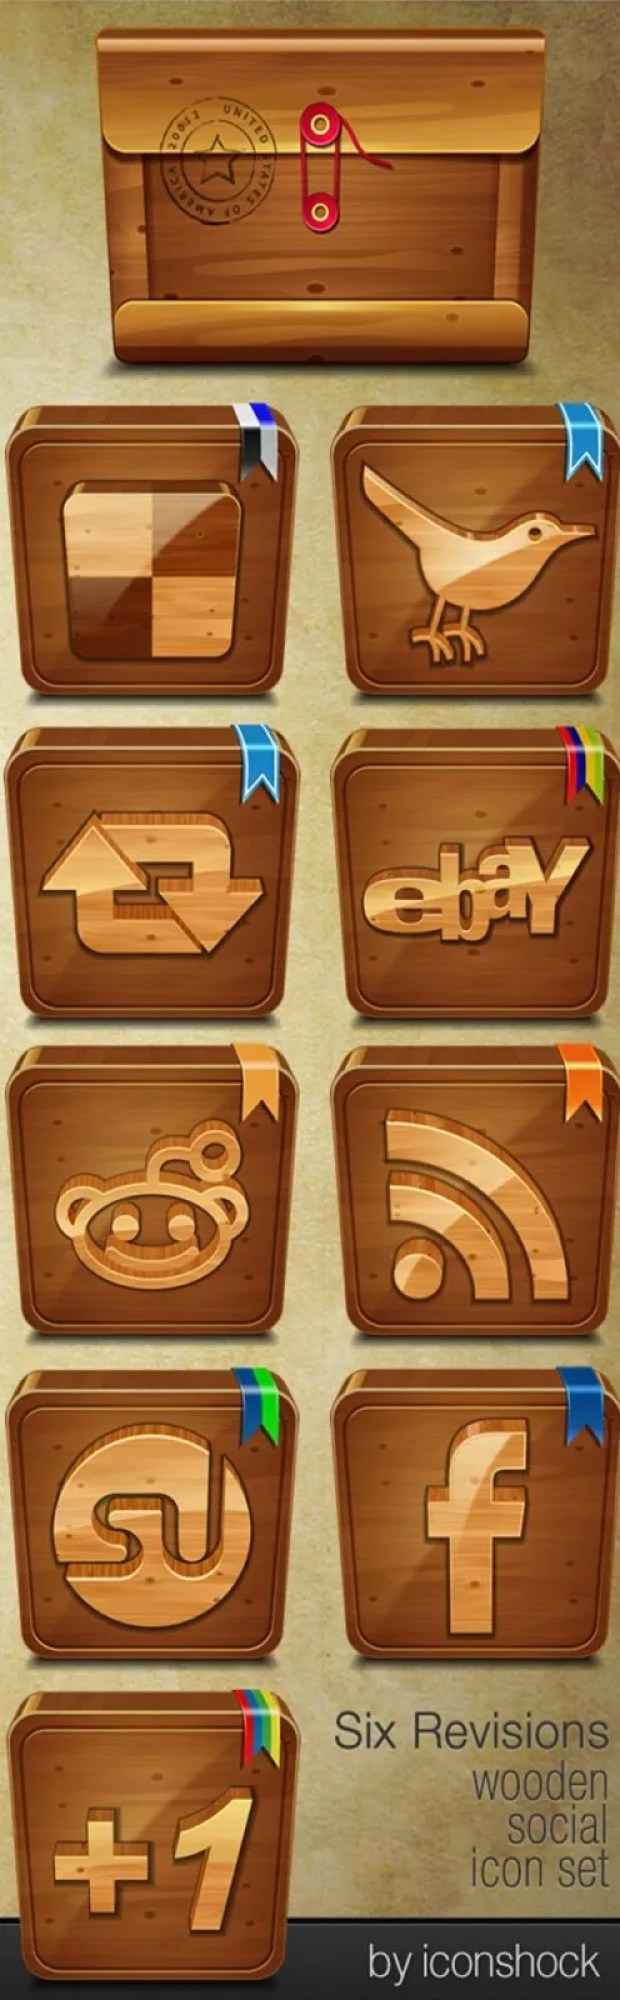 woodface large vectorgab - Wooden Social Media Awesome Vectors